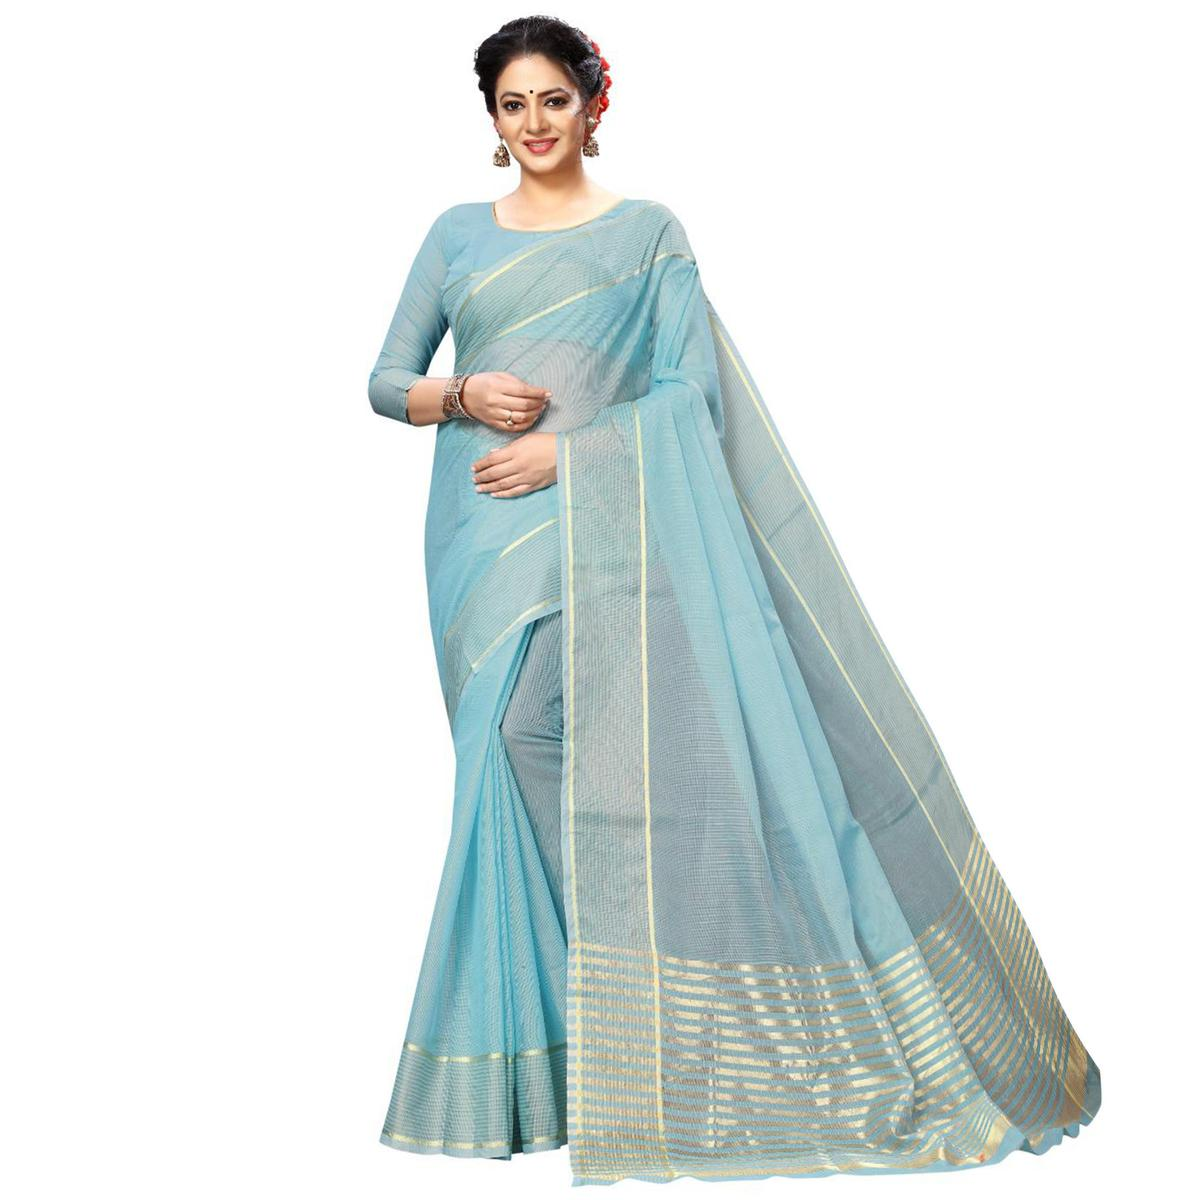 Mesmeric Stone Blue Colored Festive Wear Kota Silk Saree